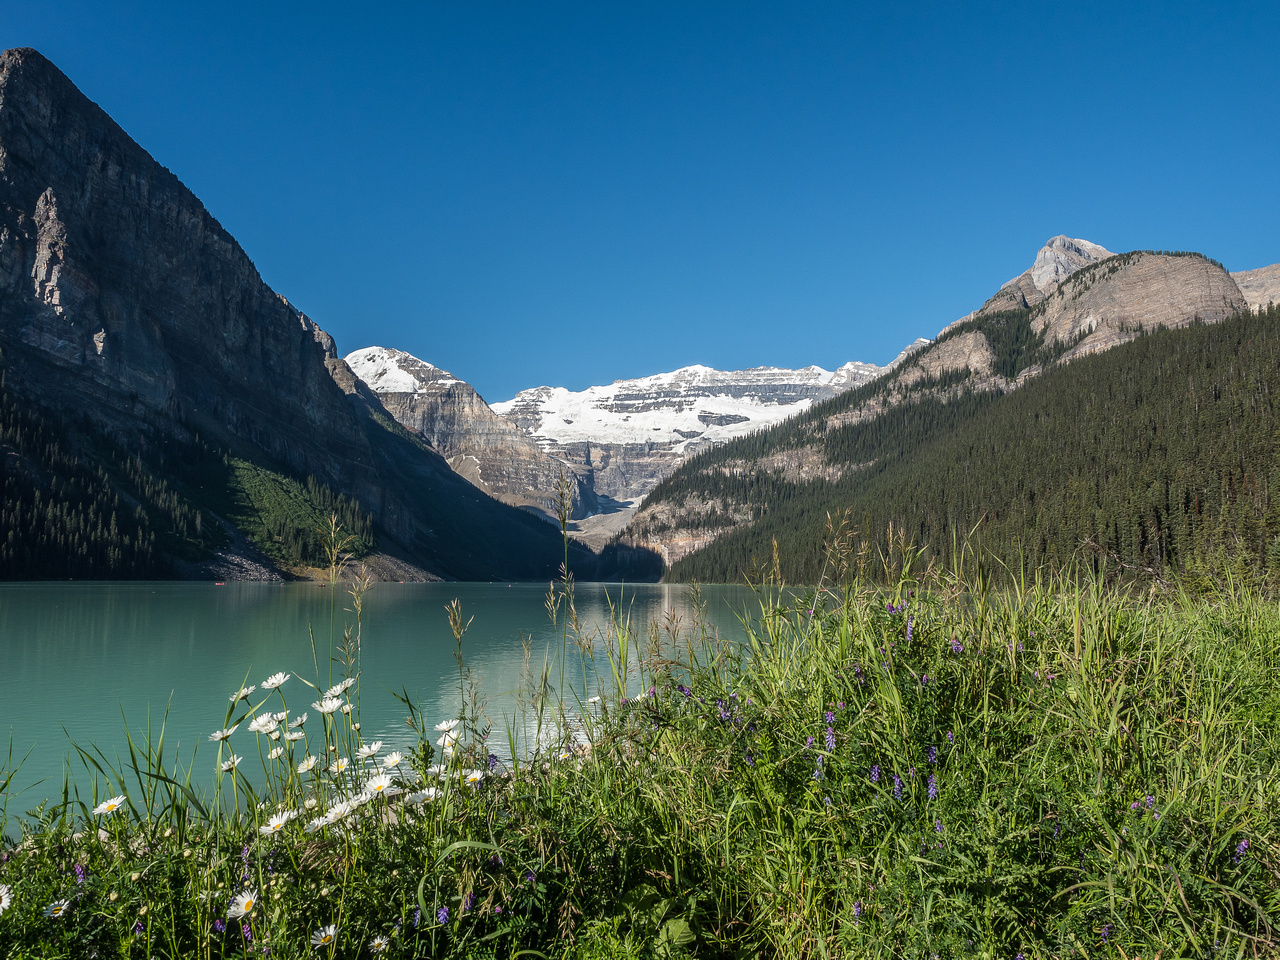 The iconic view of Lake Louise with Lefroy, Victoria, Devil's Thumb, Whyte and the Beehive (L to R) visible.